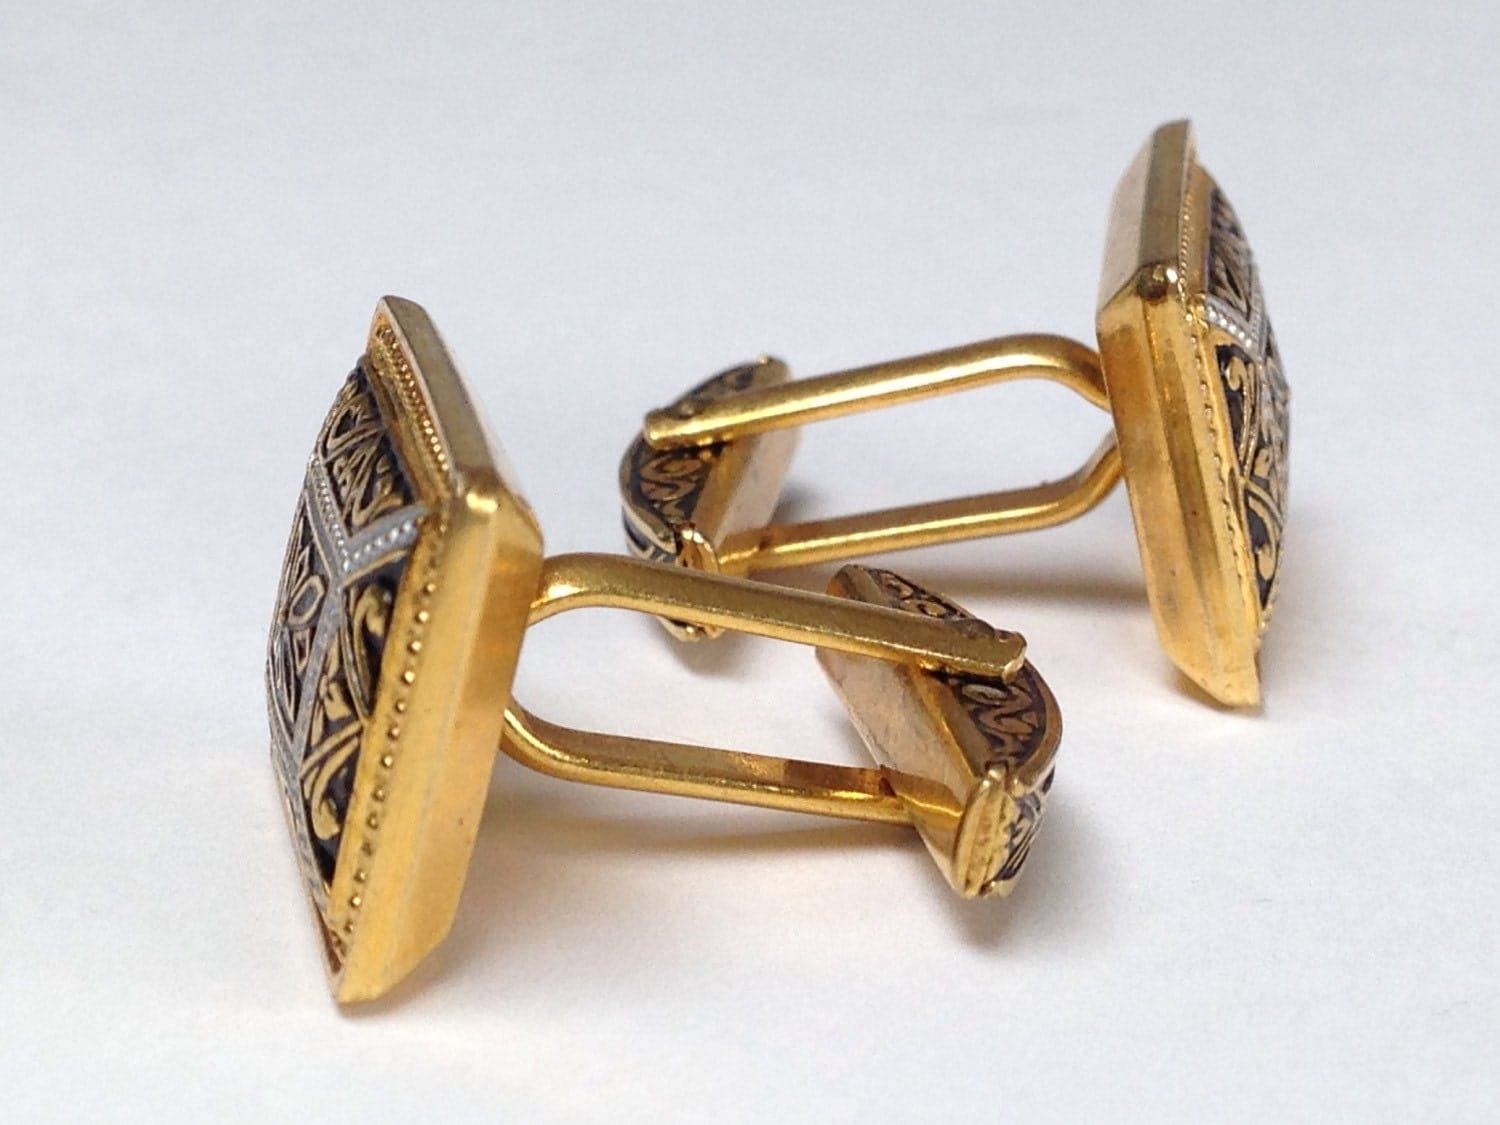 vintage men cufflinks art deco style gold and black by xclips. Black Bedroom Furniture Sets. Home Design Ideas